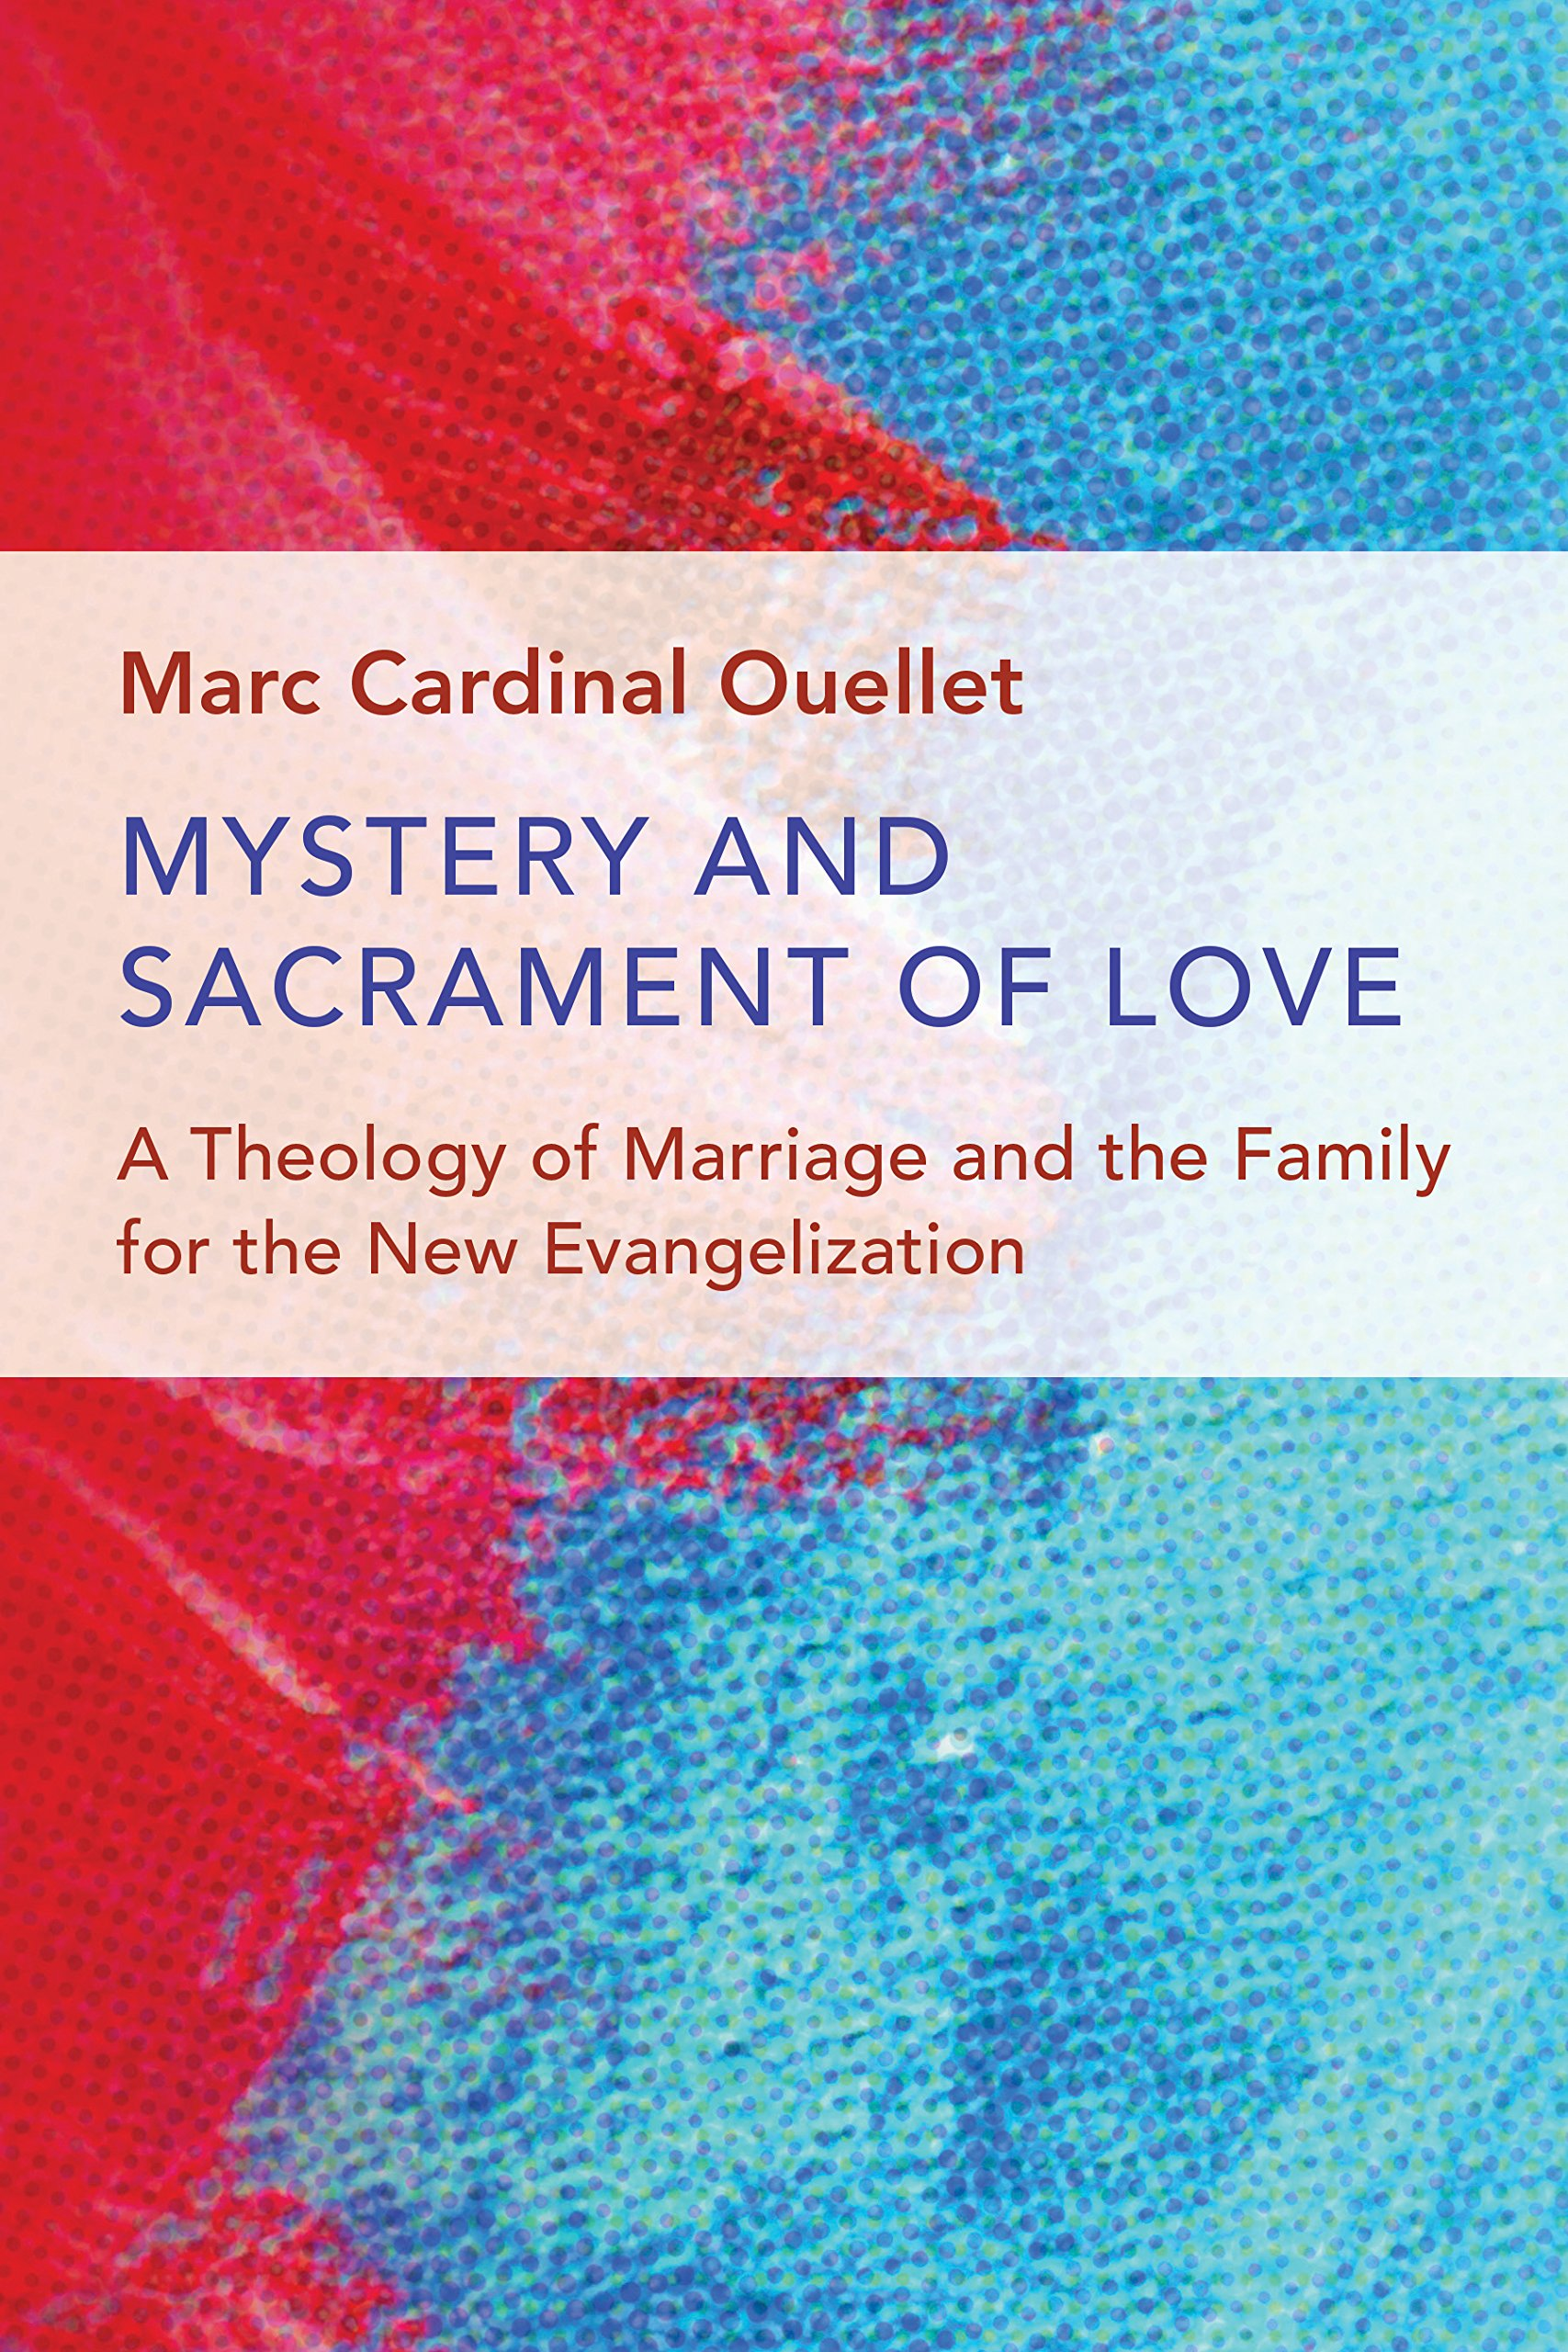 Mystery and Sacrament of Love: A Theology of Marriage and the Family for the New Evangelization (Humanum Imprint)